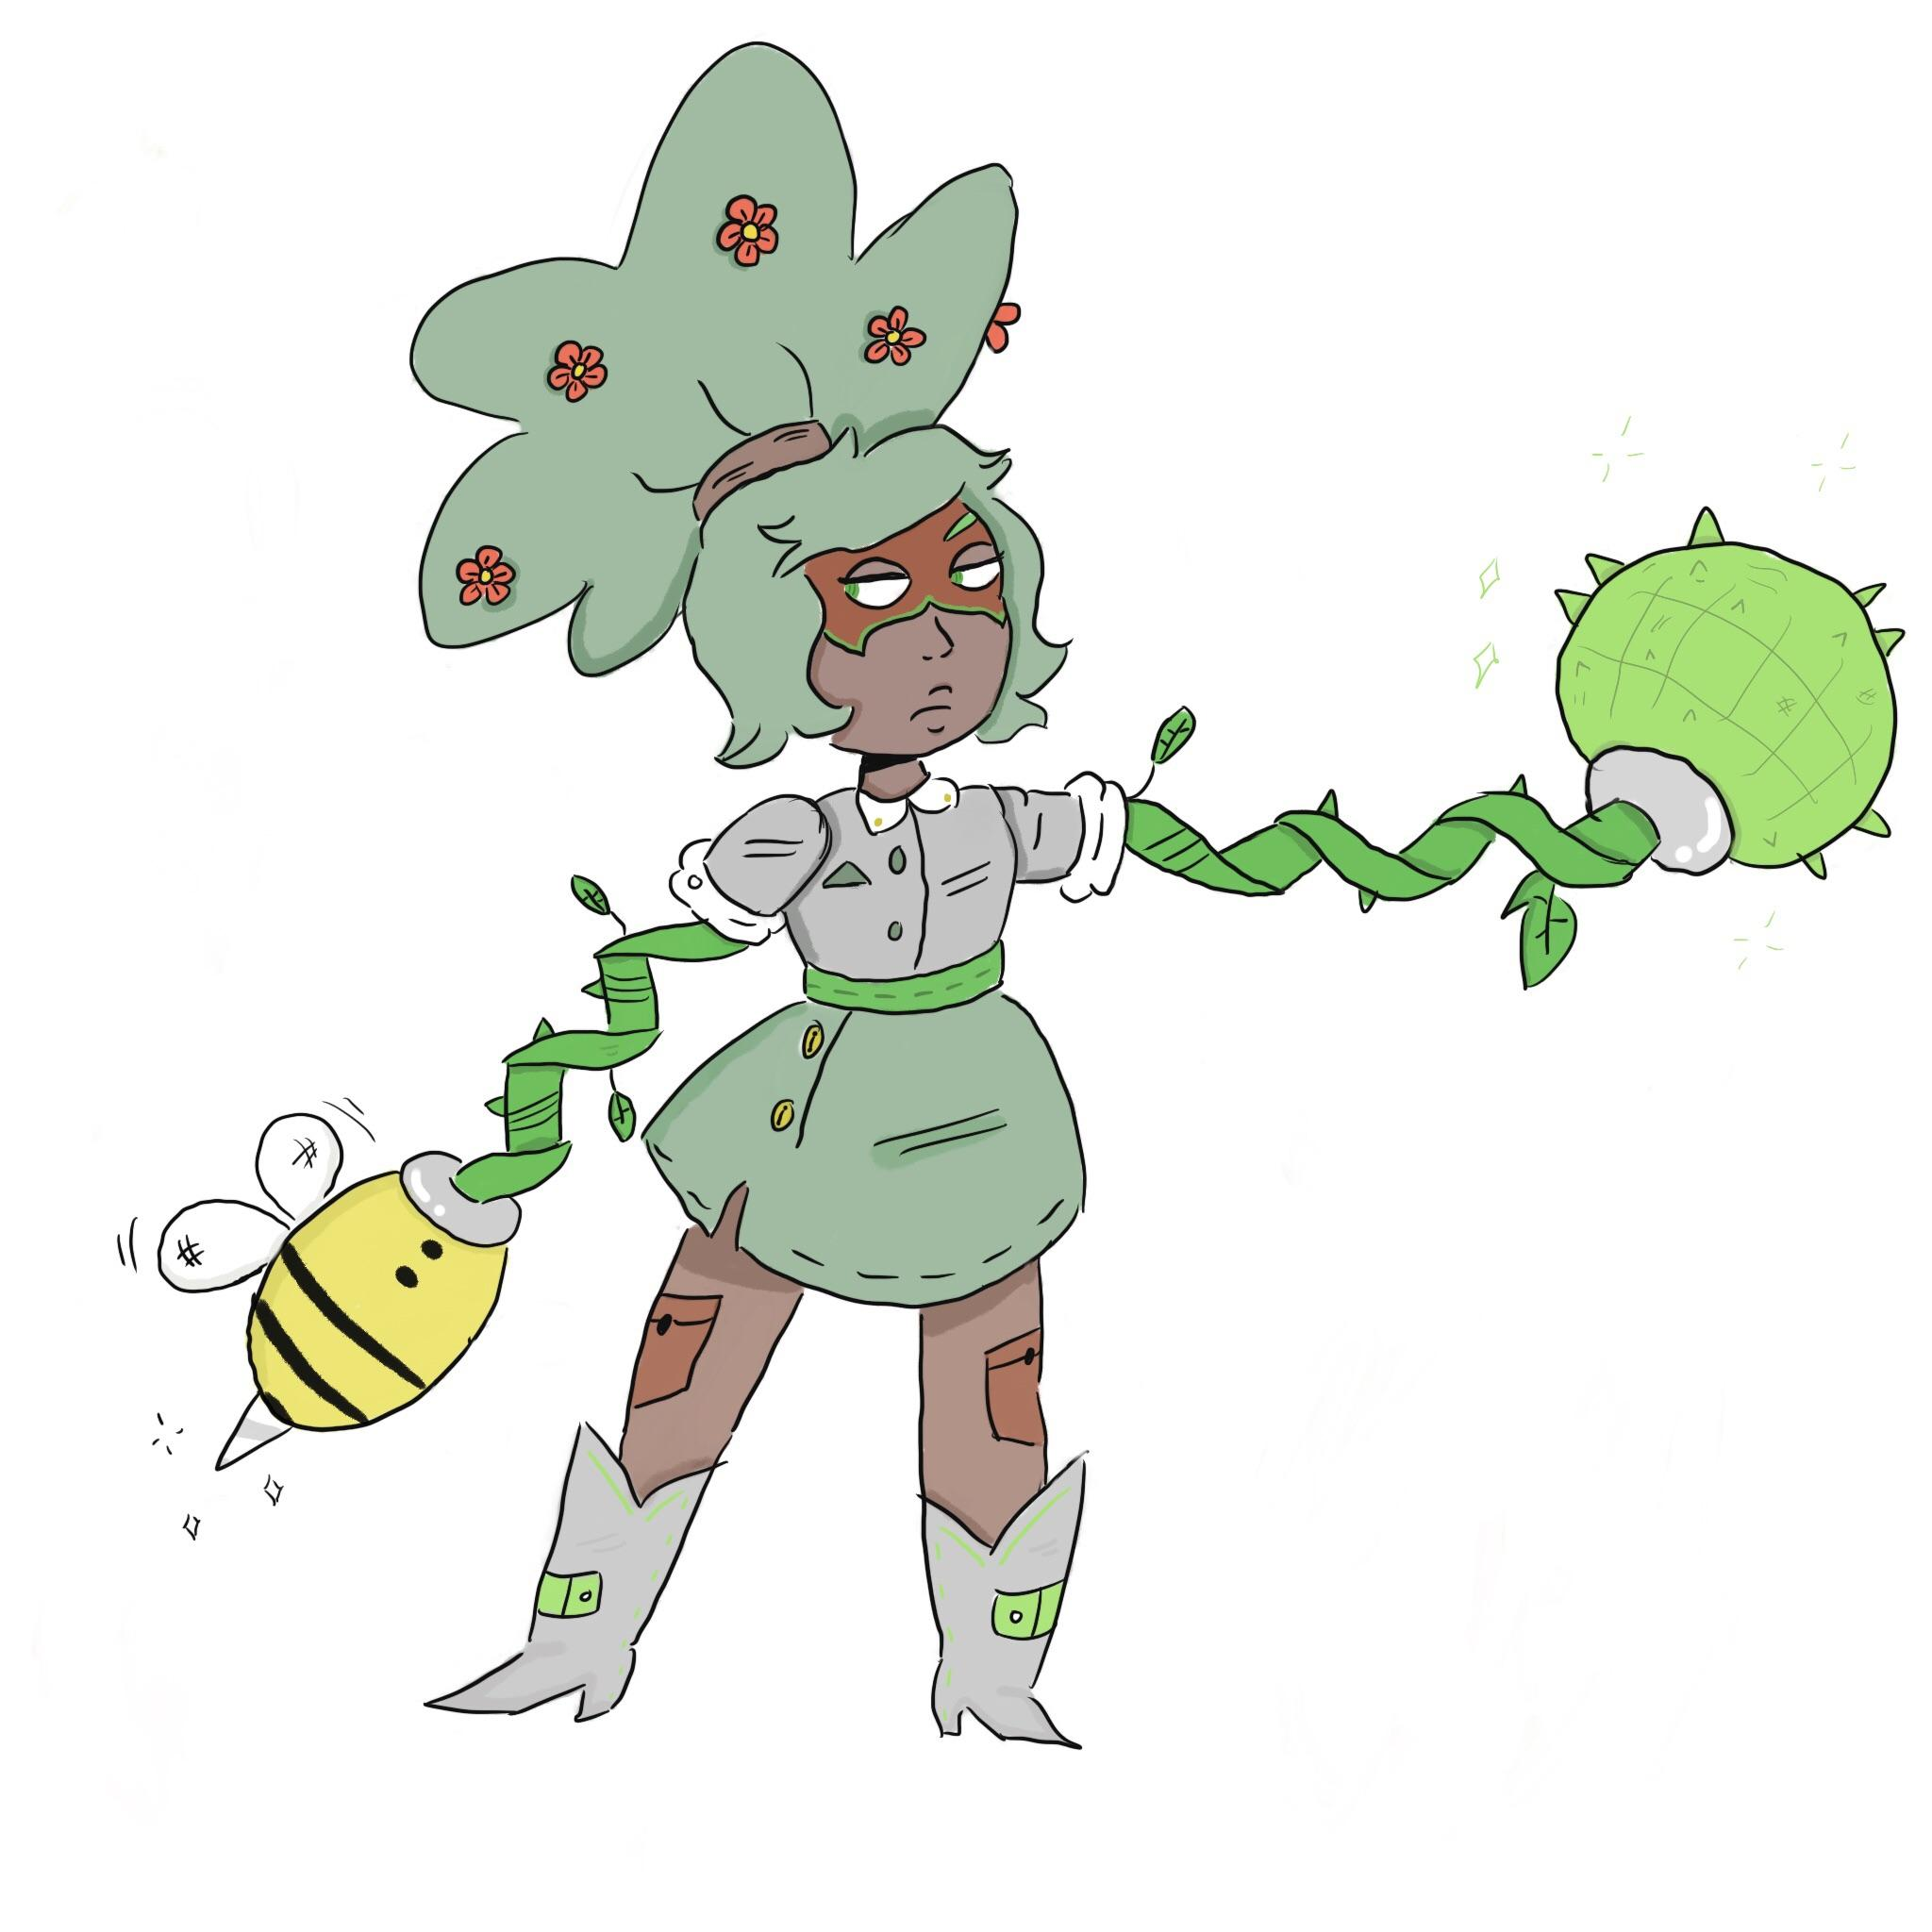 2048x2048 the final drawing of my plant arms oc, rose mary!! arms